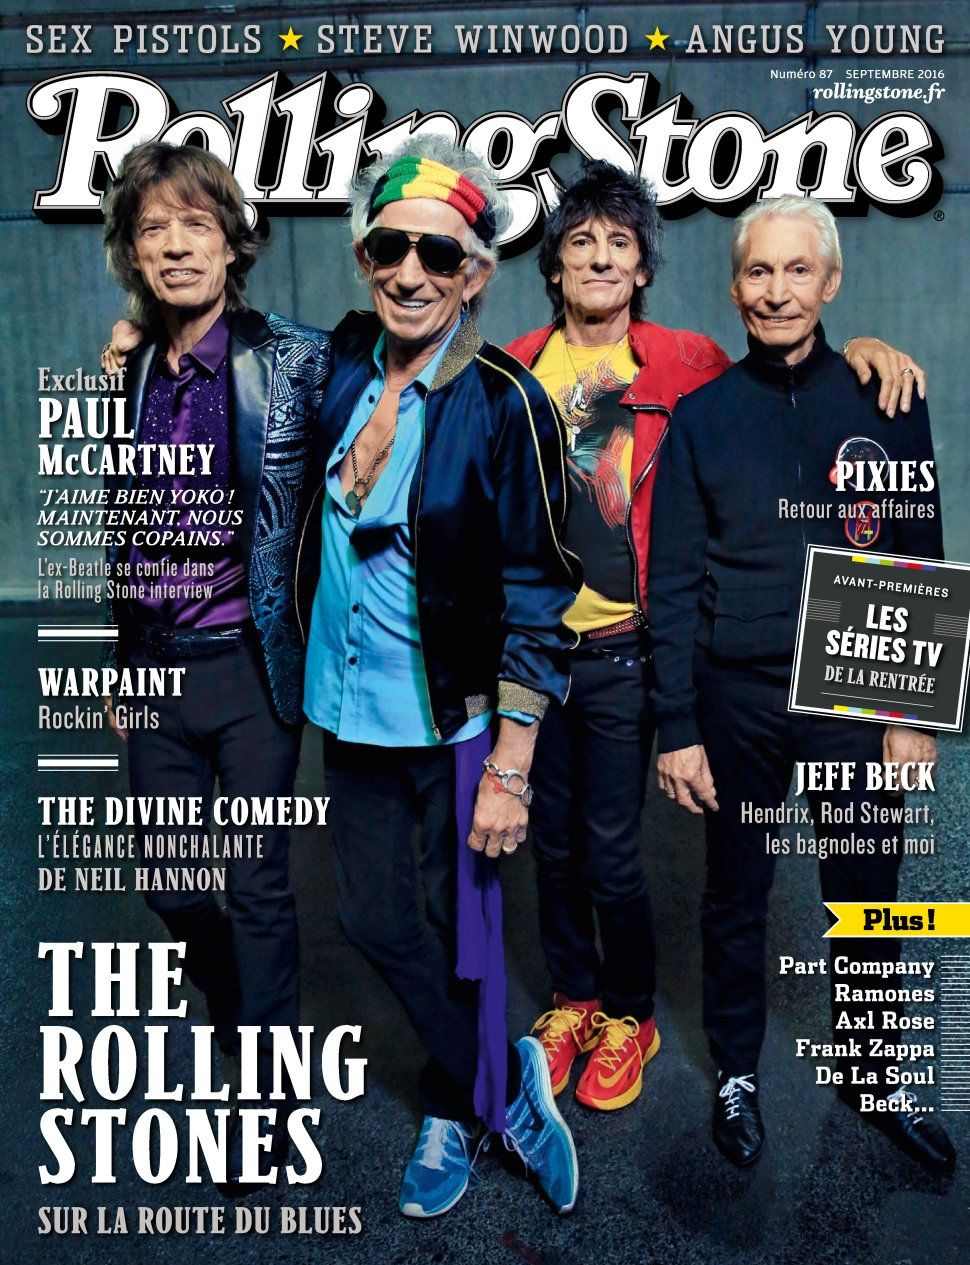 Rolling Stone 87 - Septembre 2016